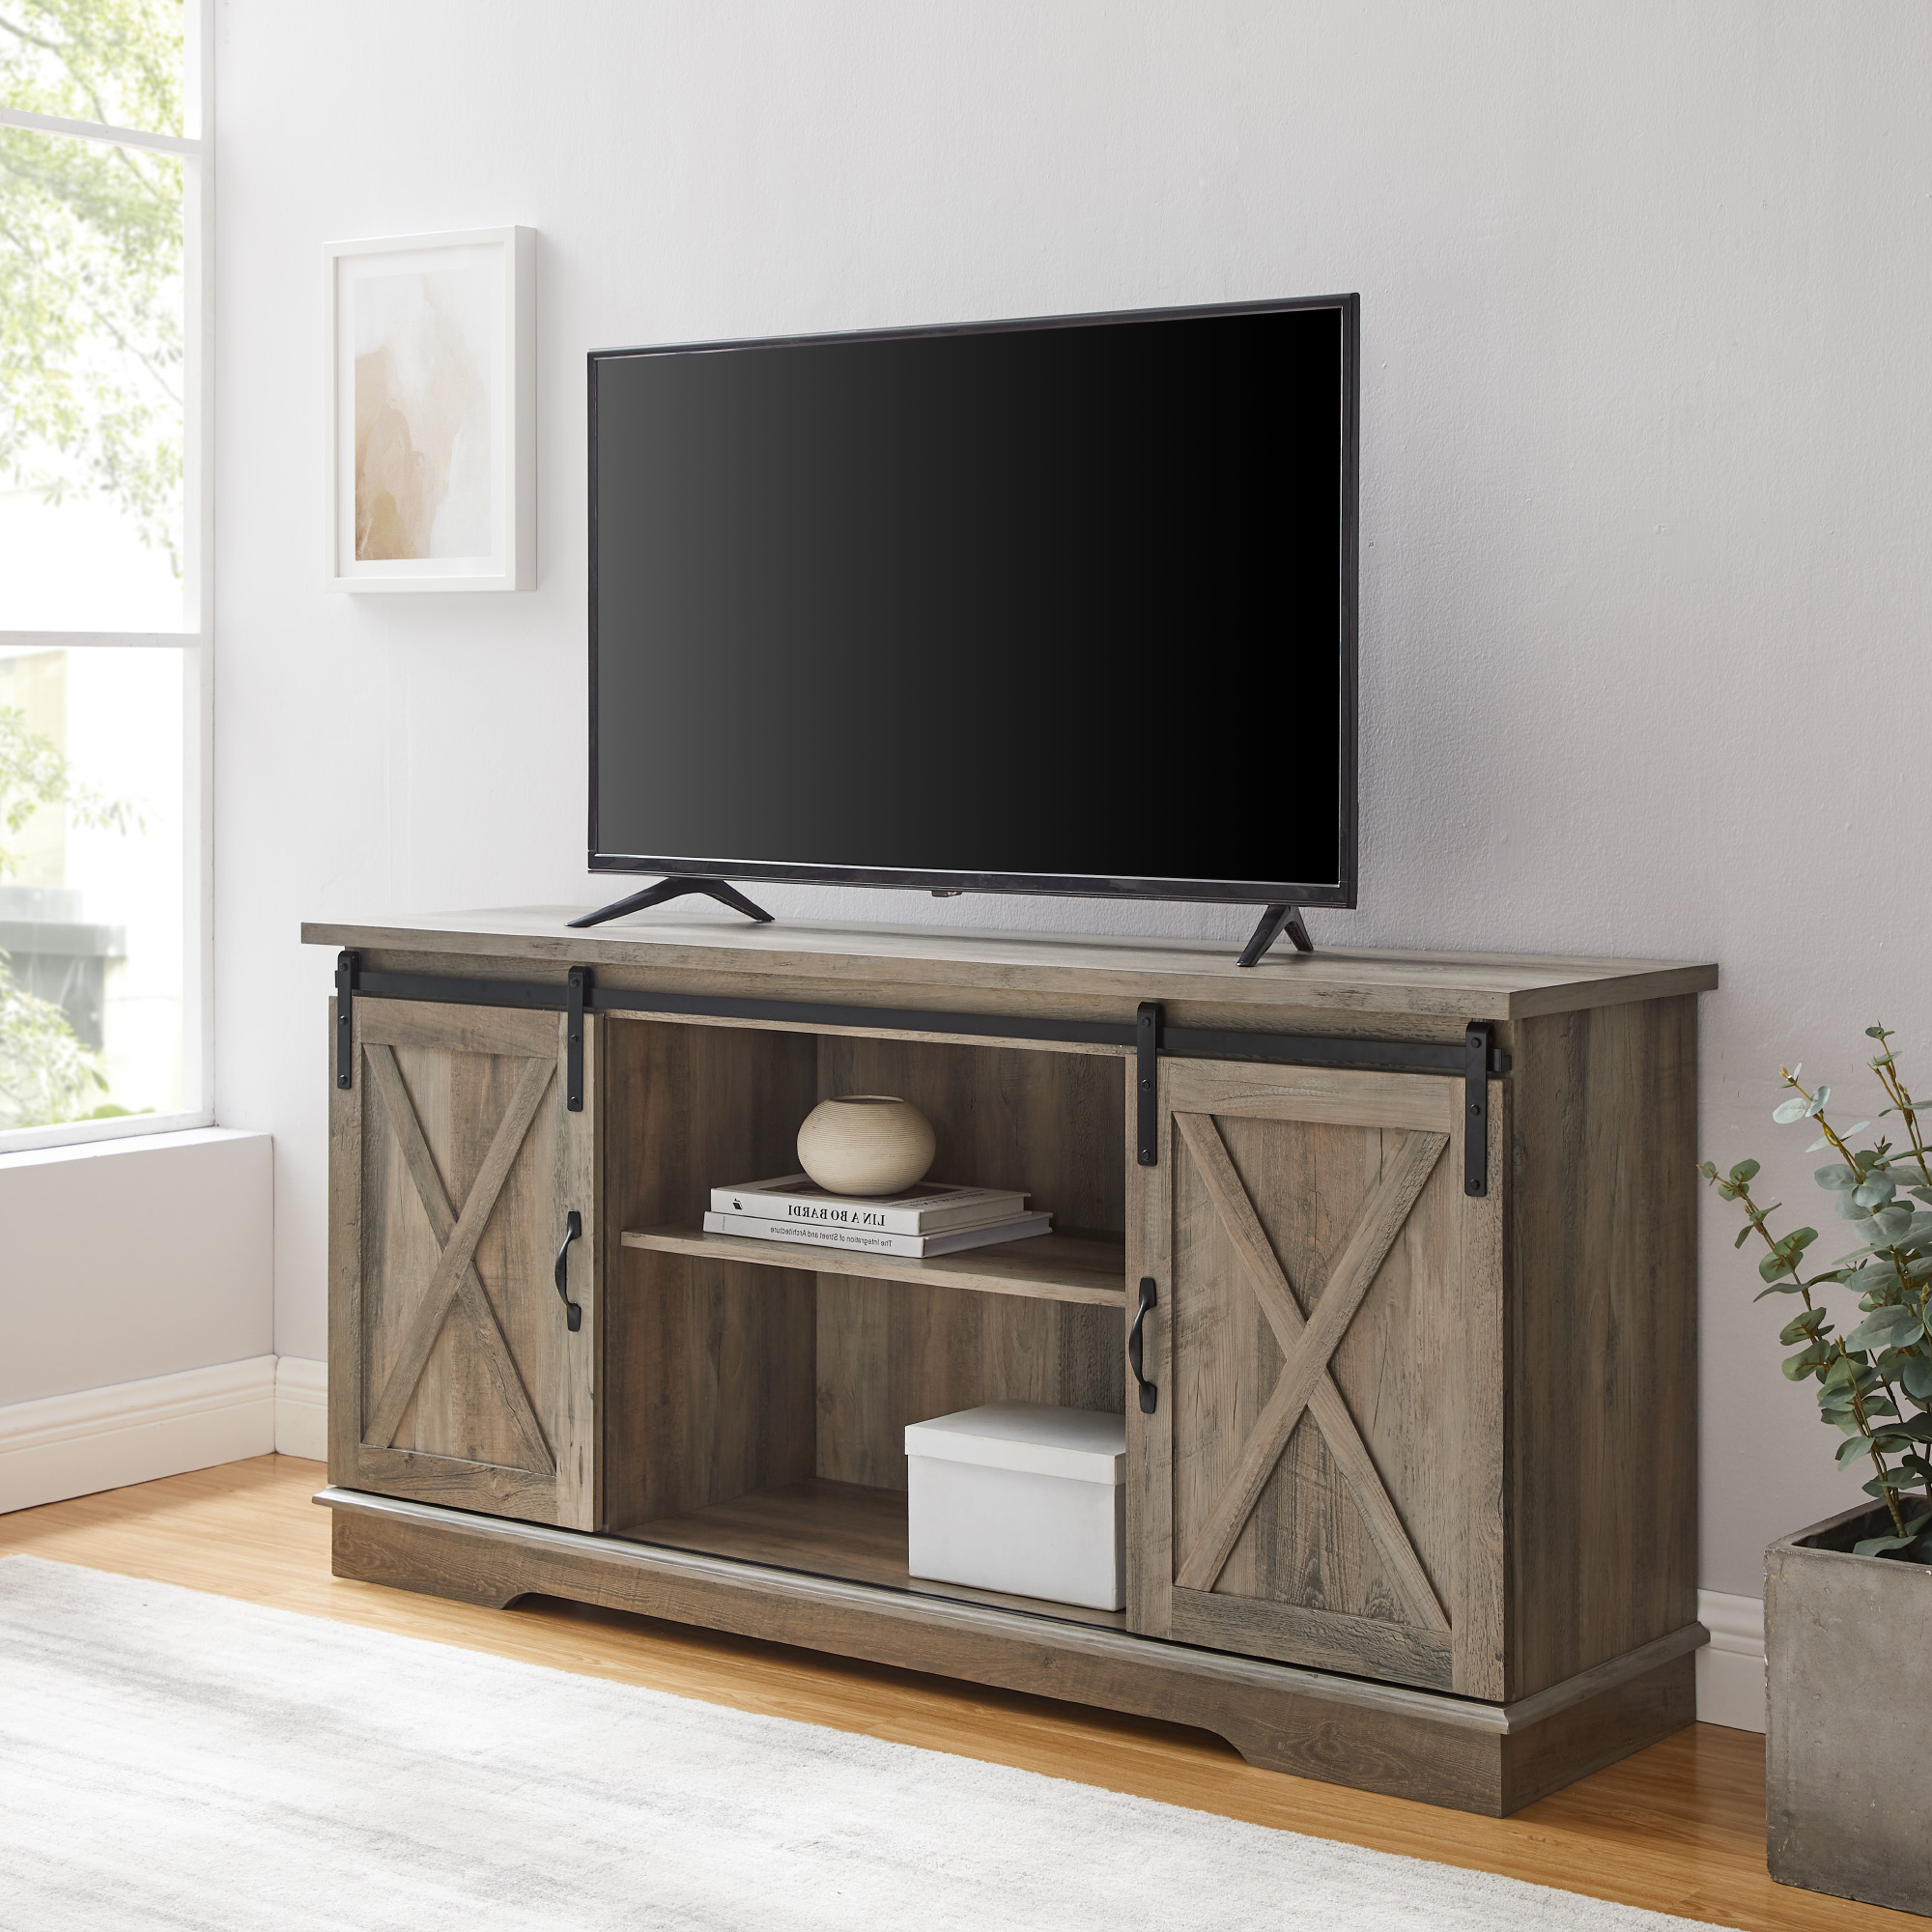 """Recent Woven Paths Farmhouse Sliding Barn Door Tv Stand For Tvs Intended For Caleah Tv Stands For Tvs Up To 65"""" (View 1 of 25)"""